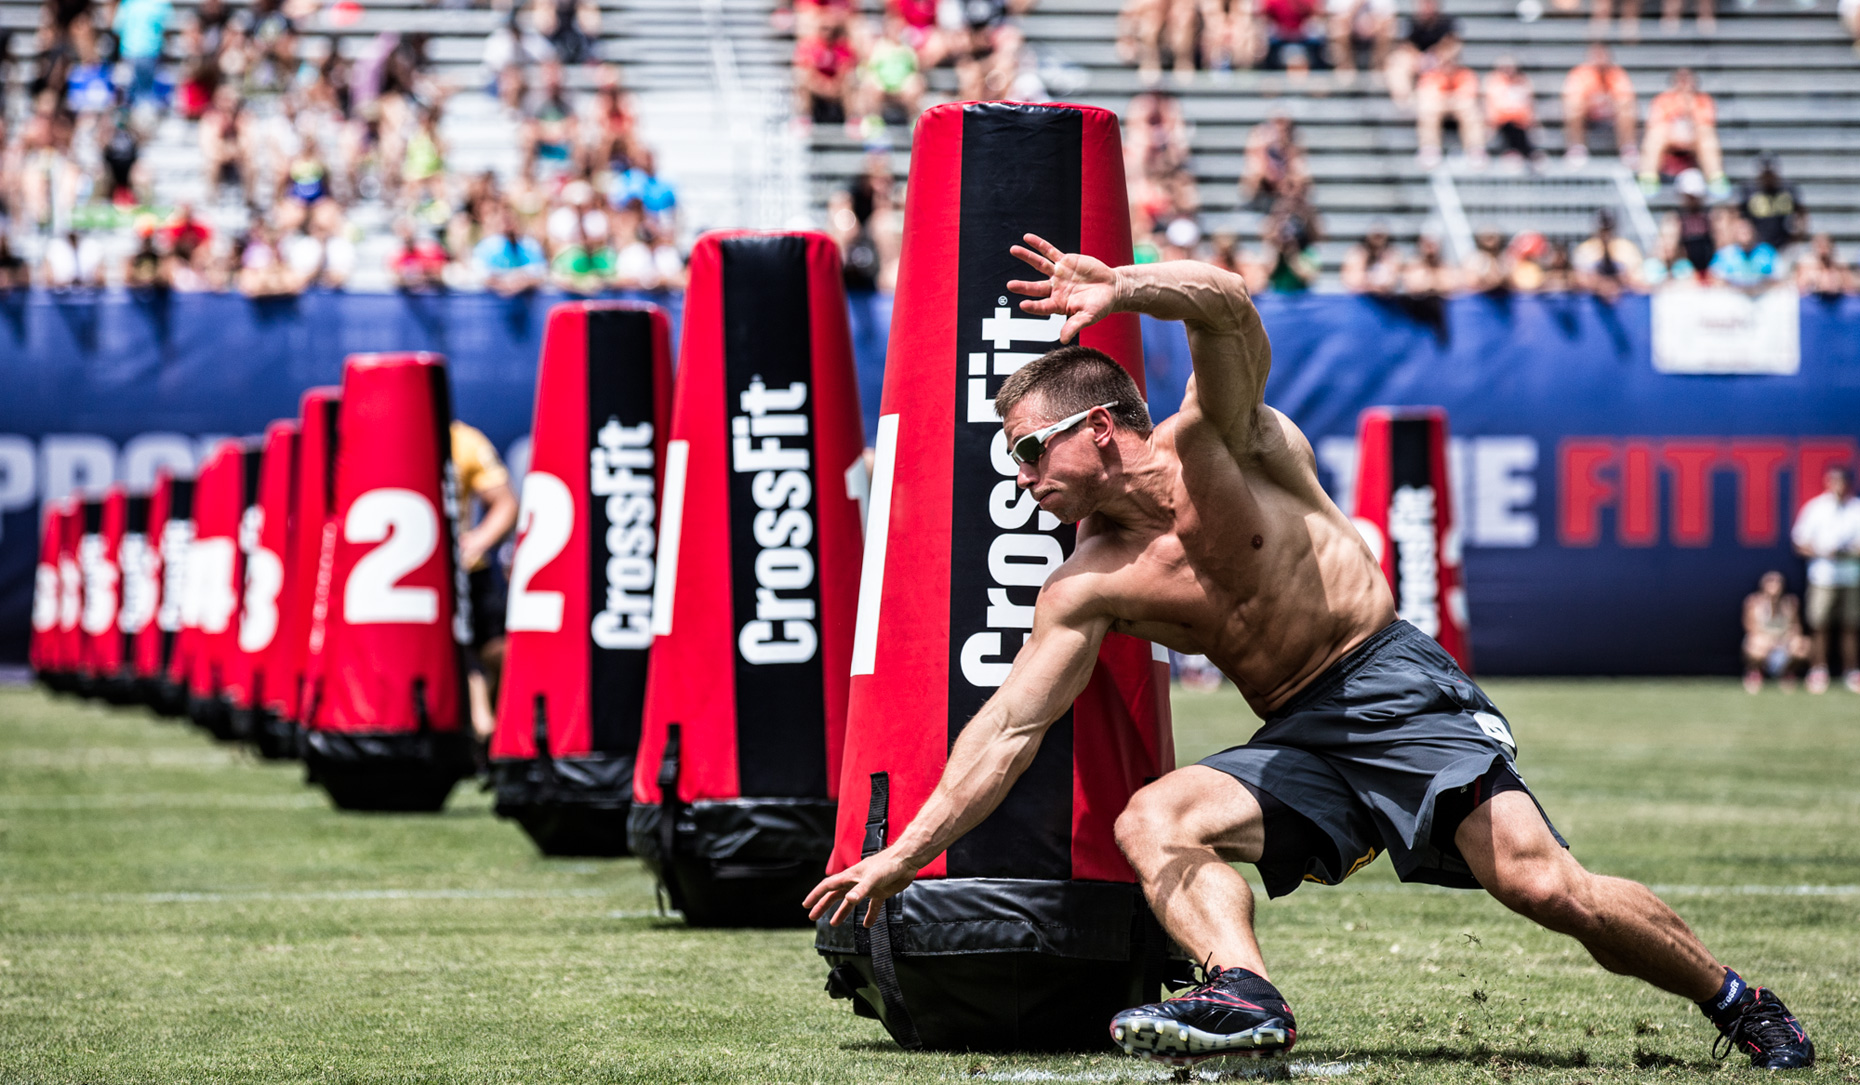 Los Angeles Sports Photography, Michael Brian, athlete, Crossfit, Dan Bailey, Zigzag Sprint, Reebok Crossfit Games athlete, StubHub Center